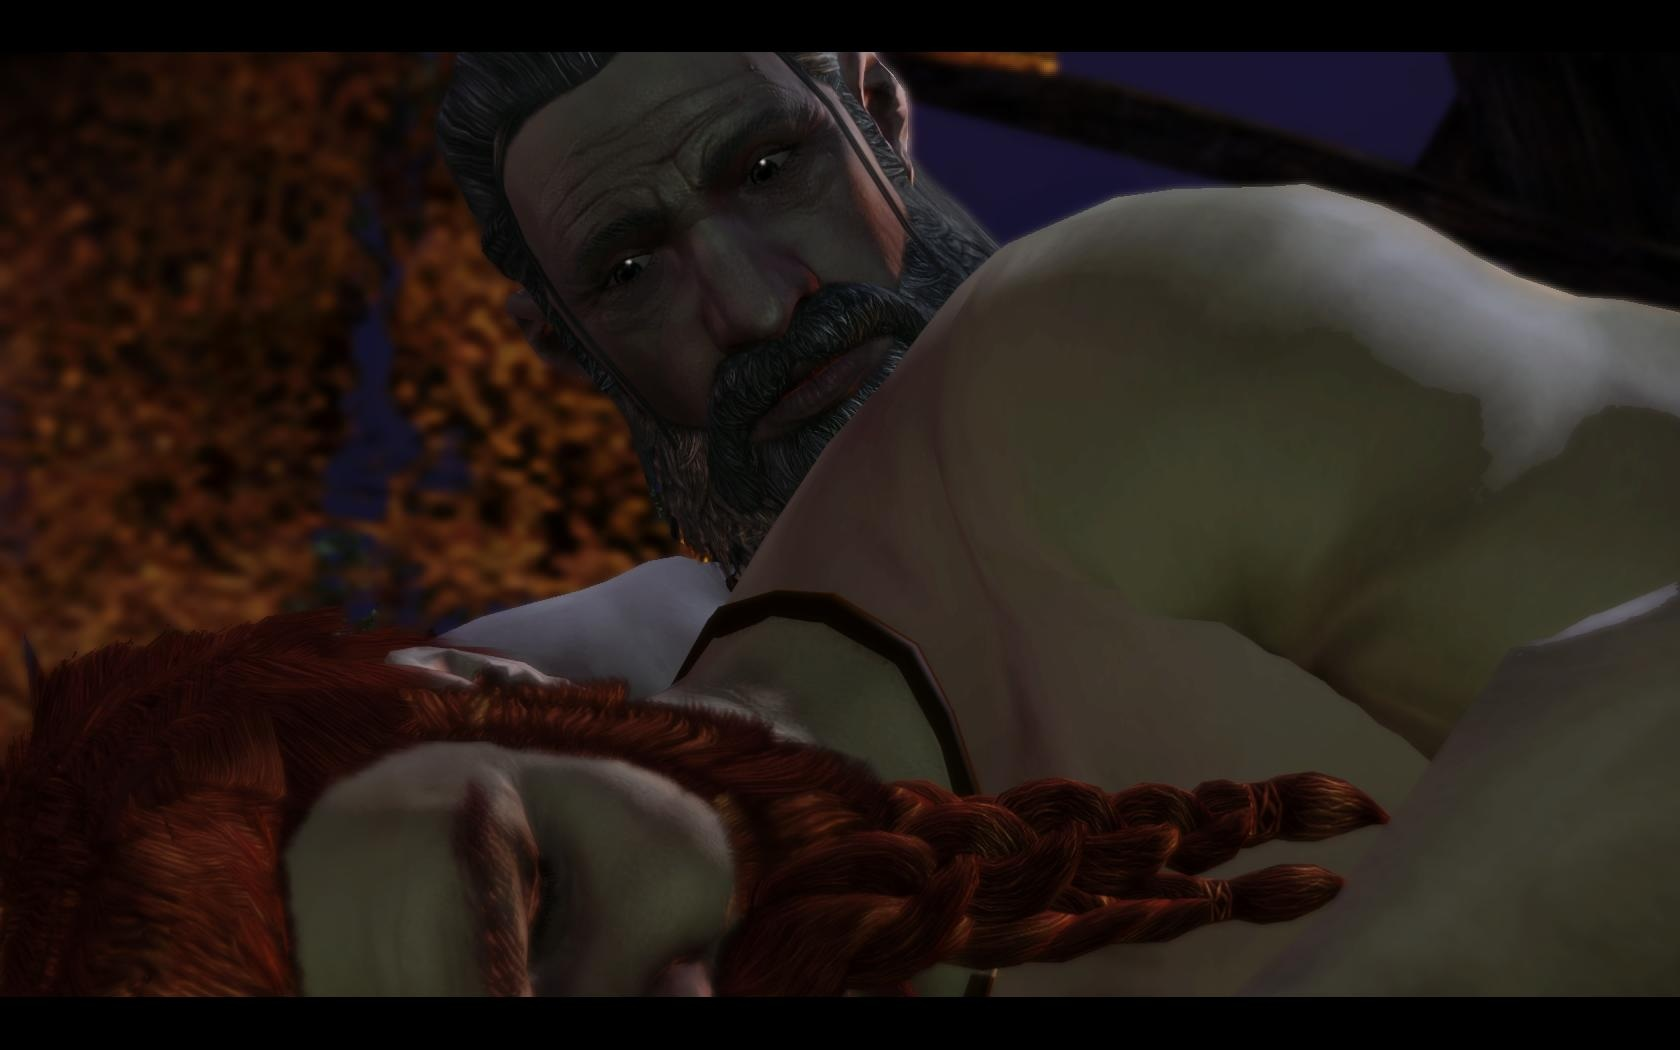 Dragon age origins sex tube erotica images